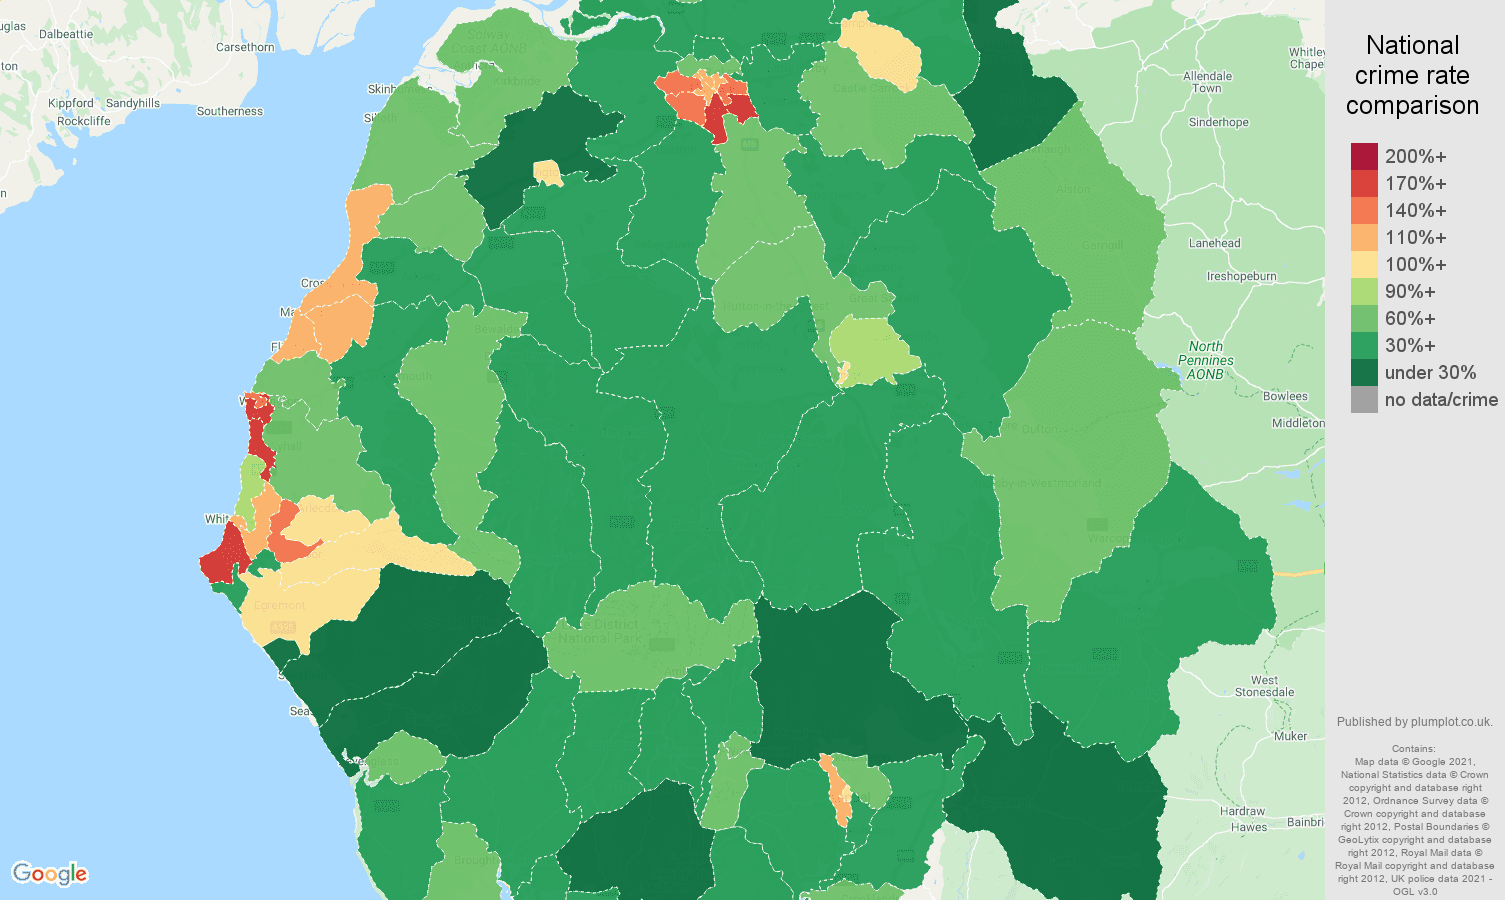 Cumbria violent crime rate comparison map